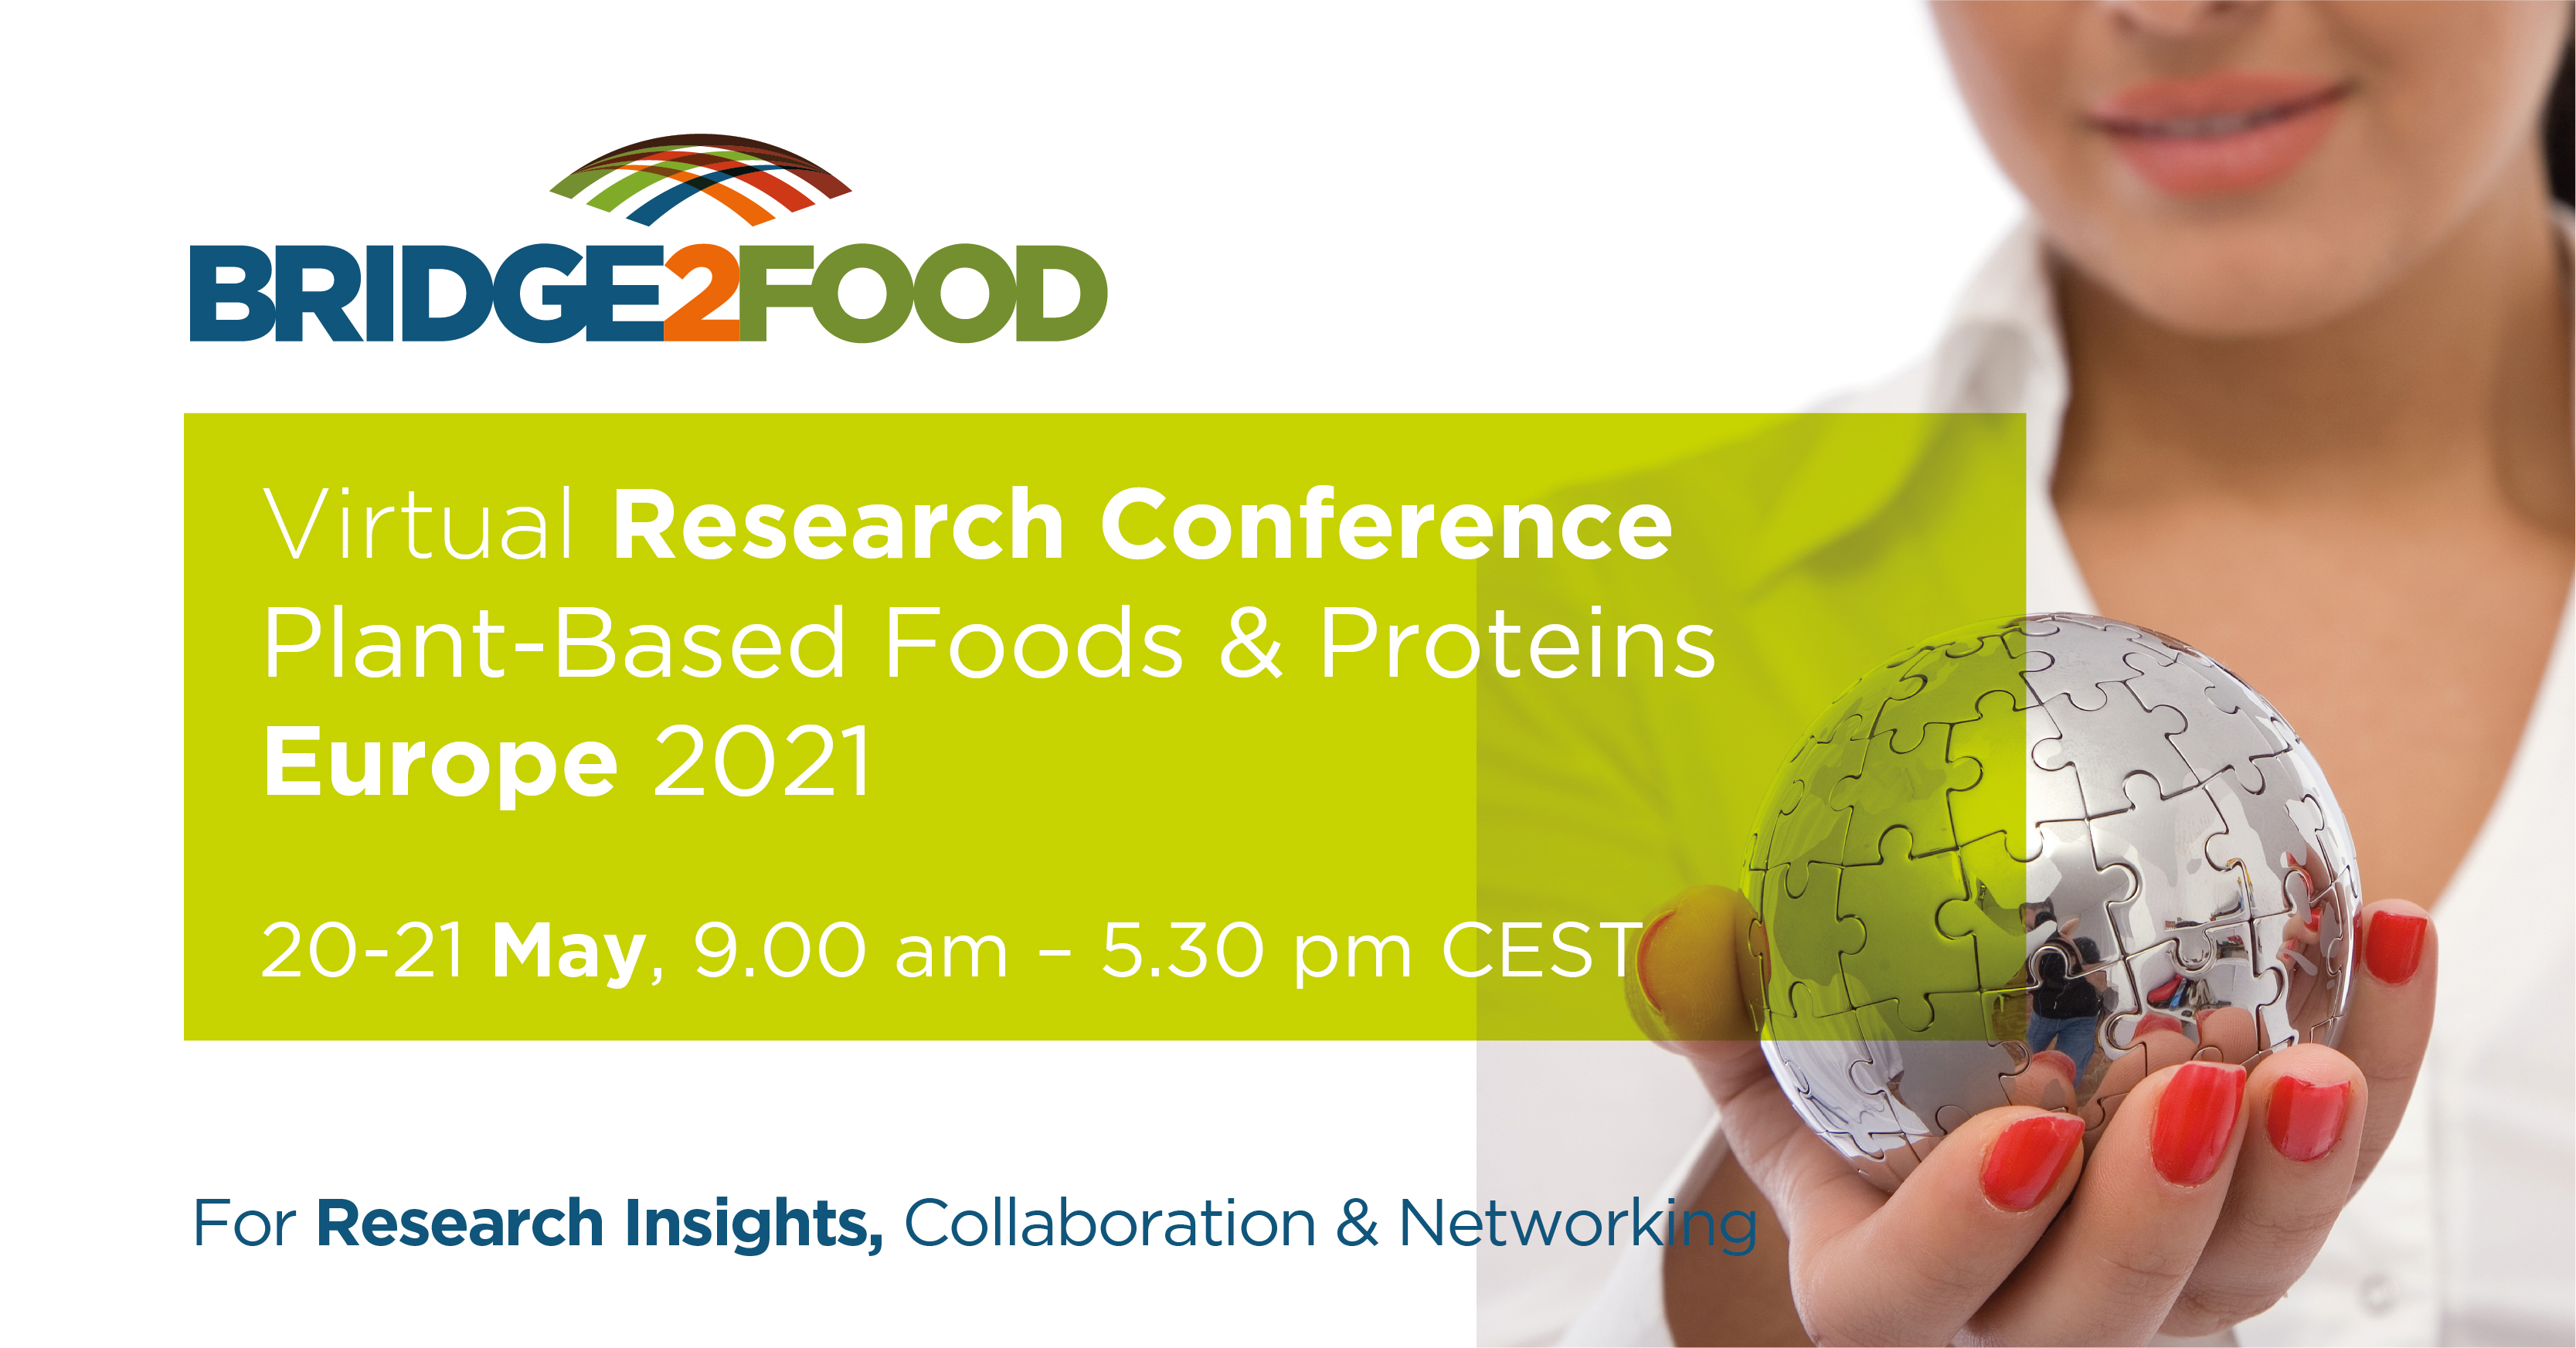 Bridge2Food_Banner_2021_Virtual_Research_Conference_Europe